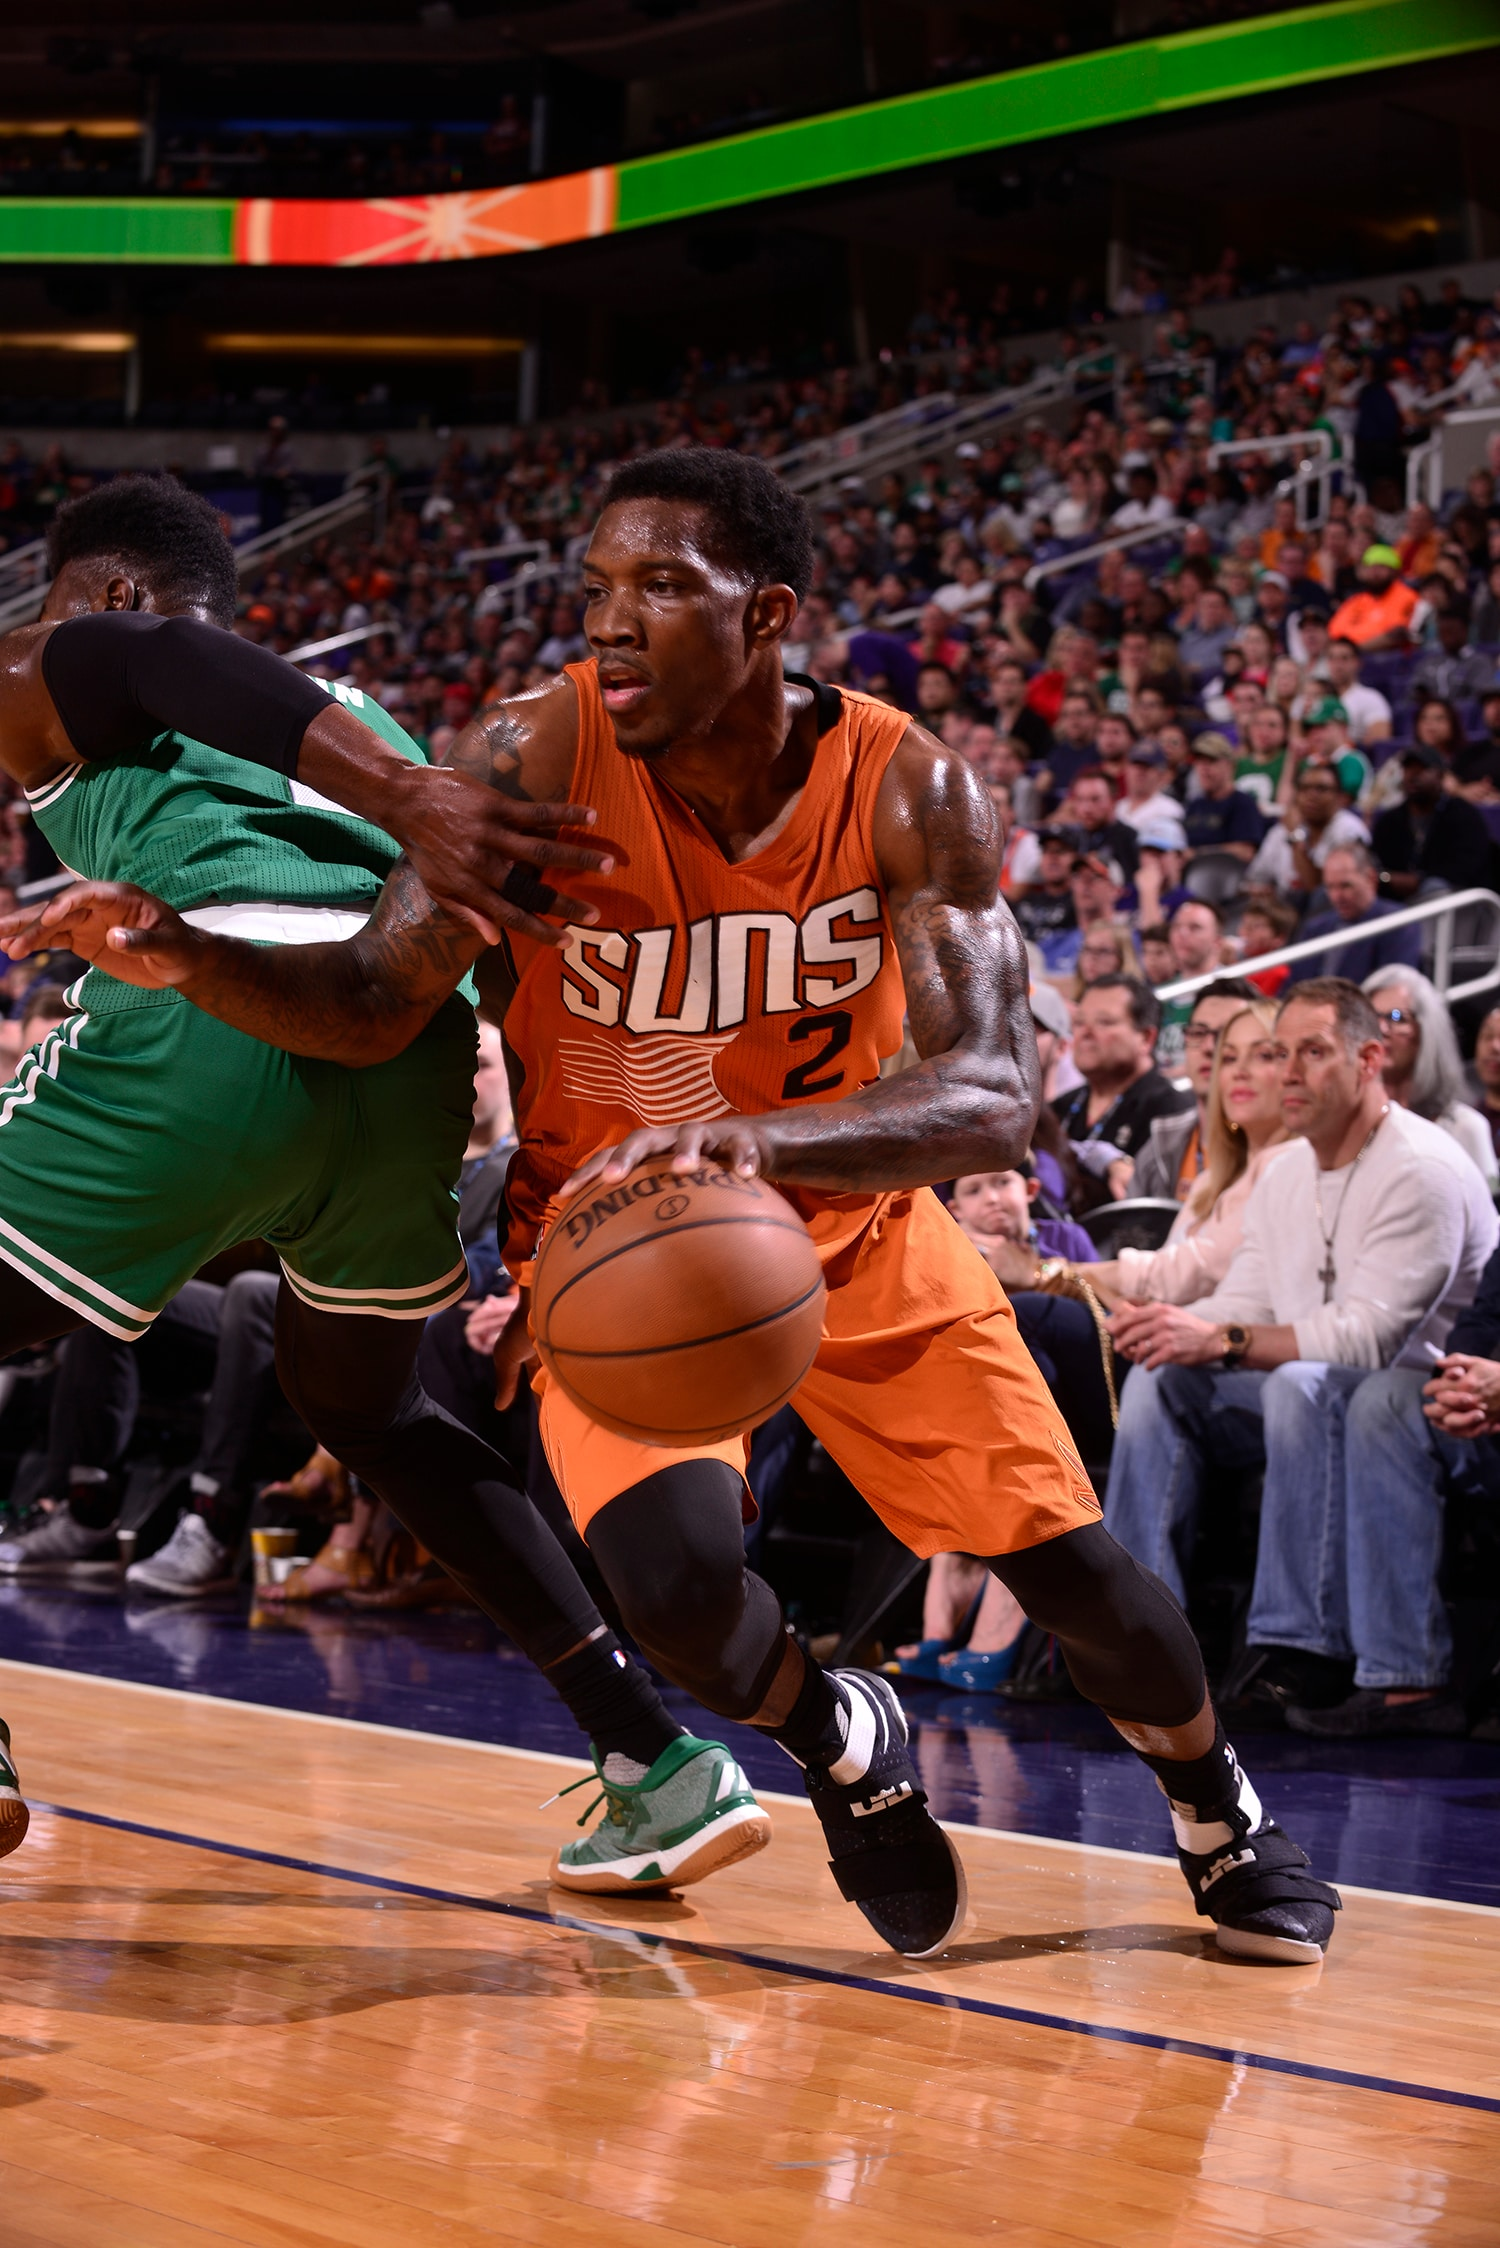 Get the latest Phoenix Suns news scores stats standings rumors and more from ESPN